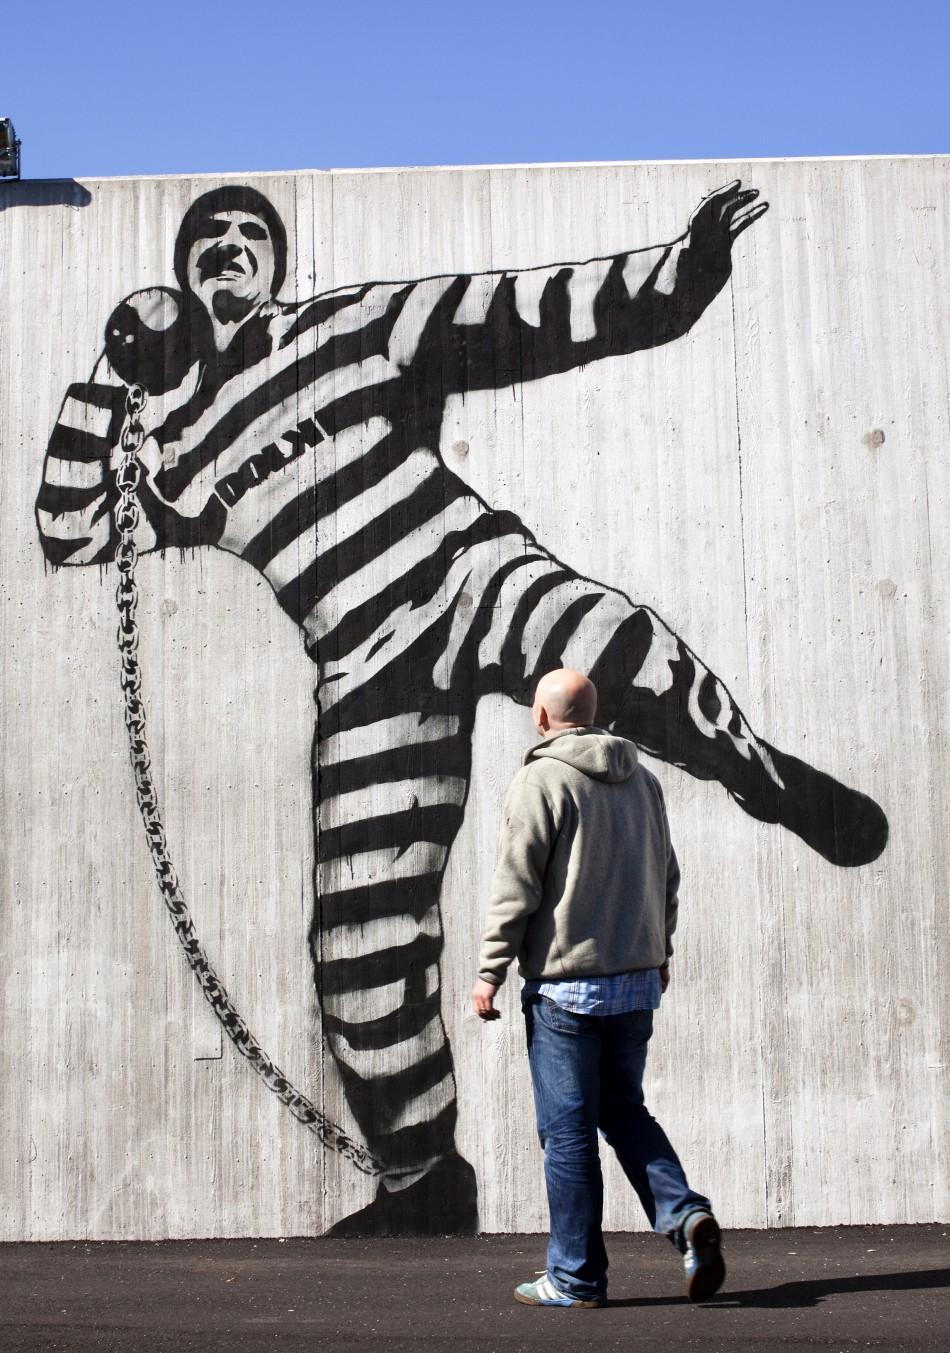 A man walks in front of graffiti inside Halden prison in the far southeast of Norway in this picture taken in 2010